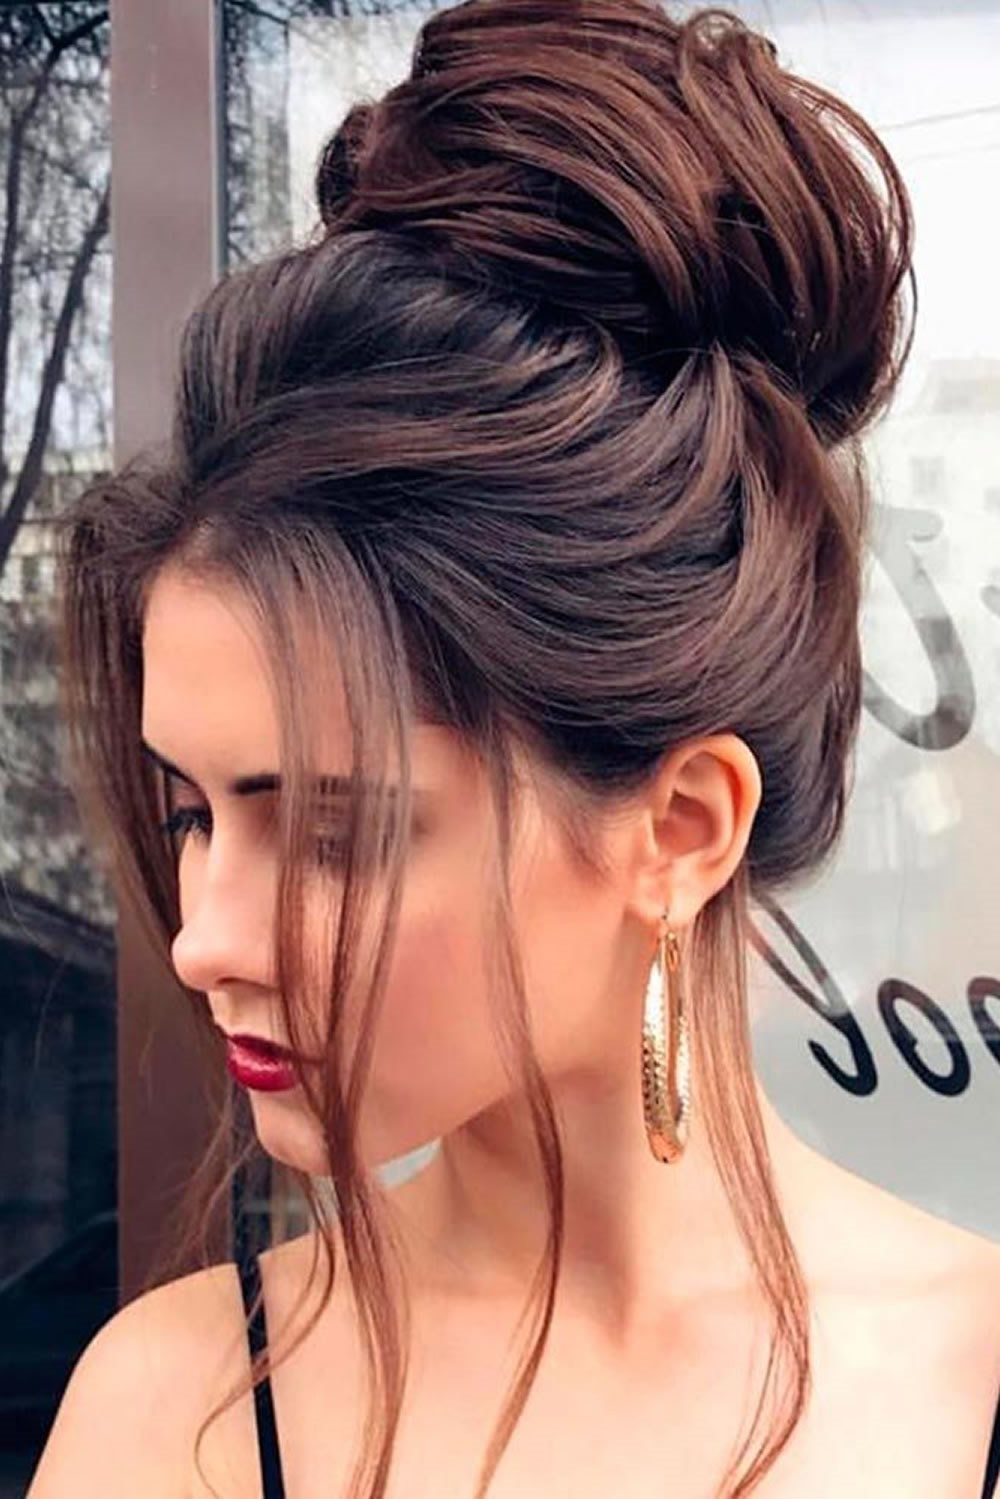 11 Awesome Party Hairstyles for Medium Hair